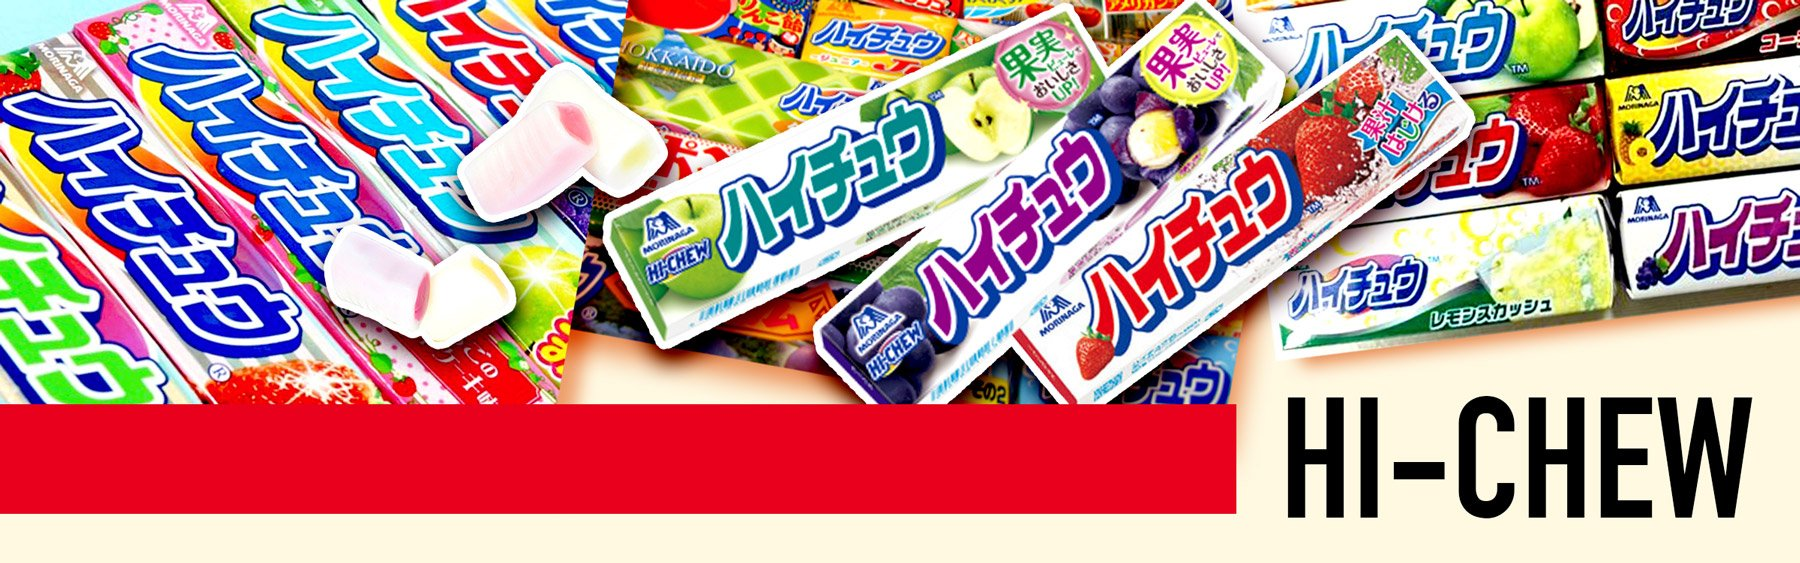 Hi-chew – Japan Crate